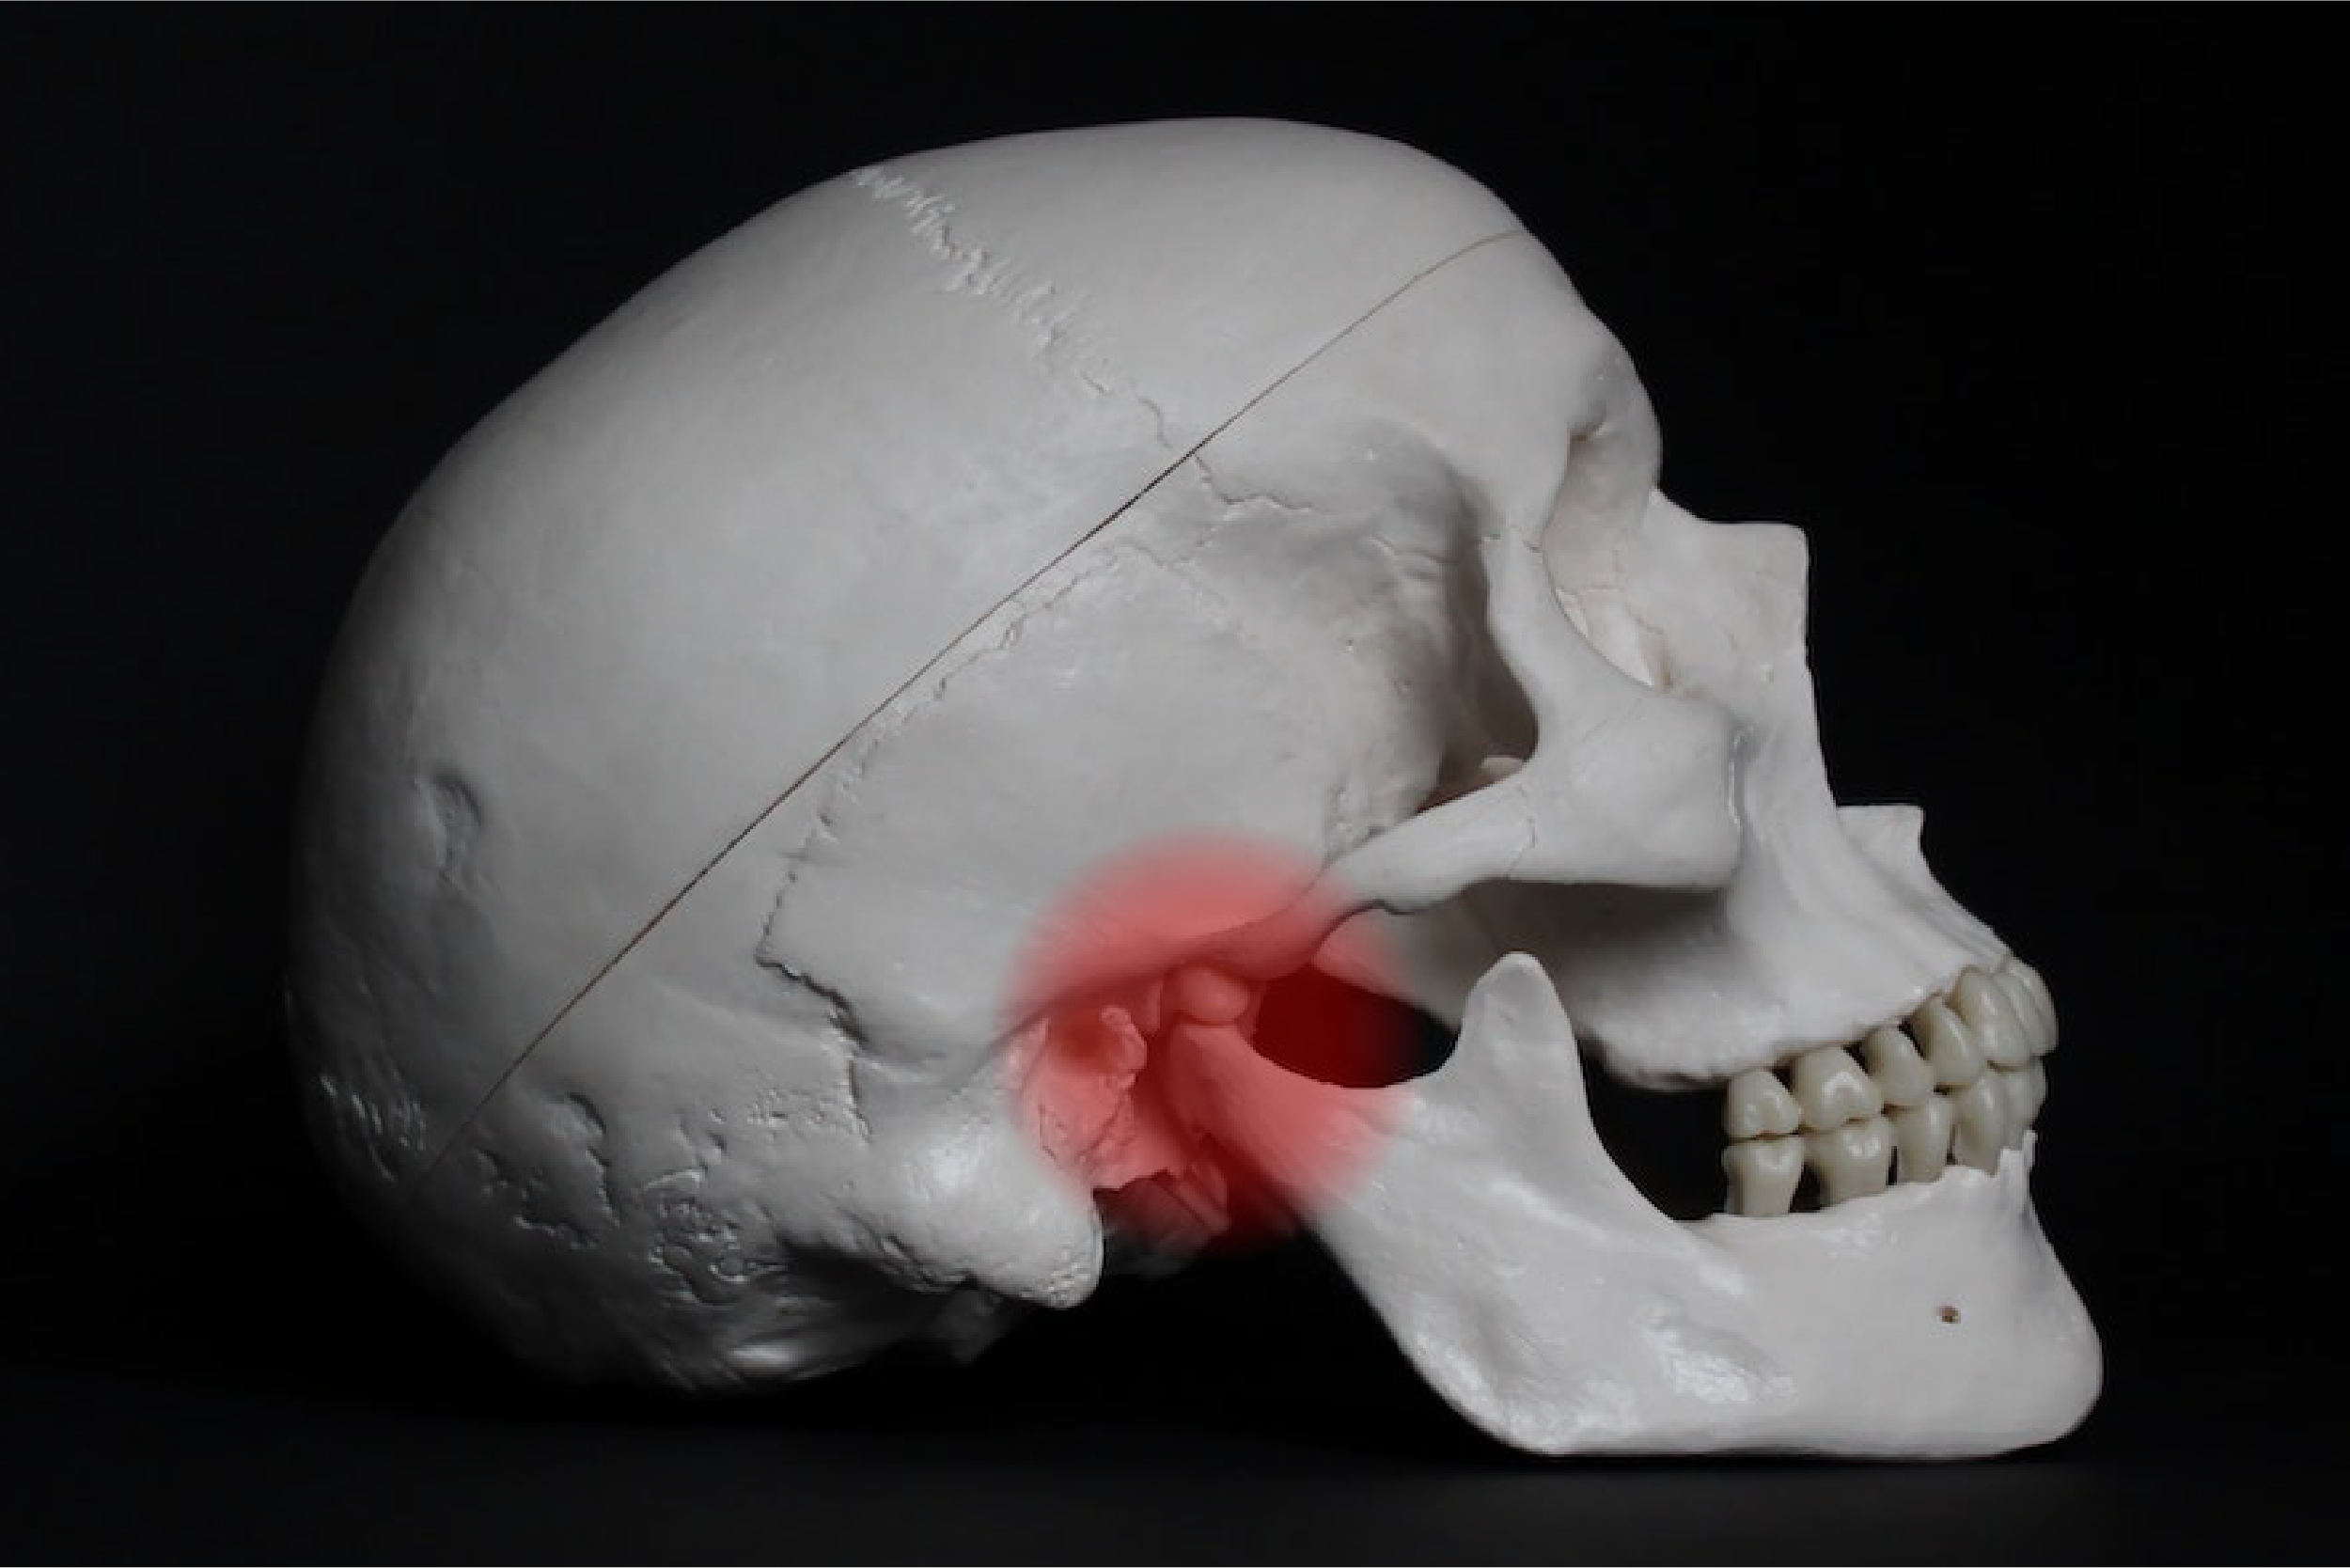 Who Specializes in TMJ Treatment?